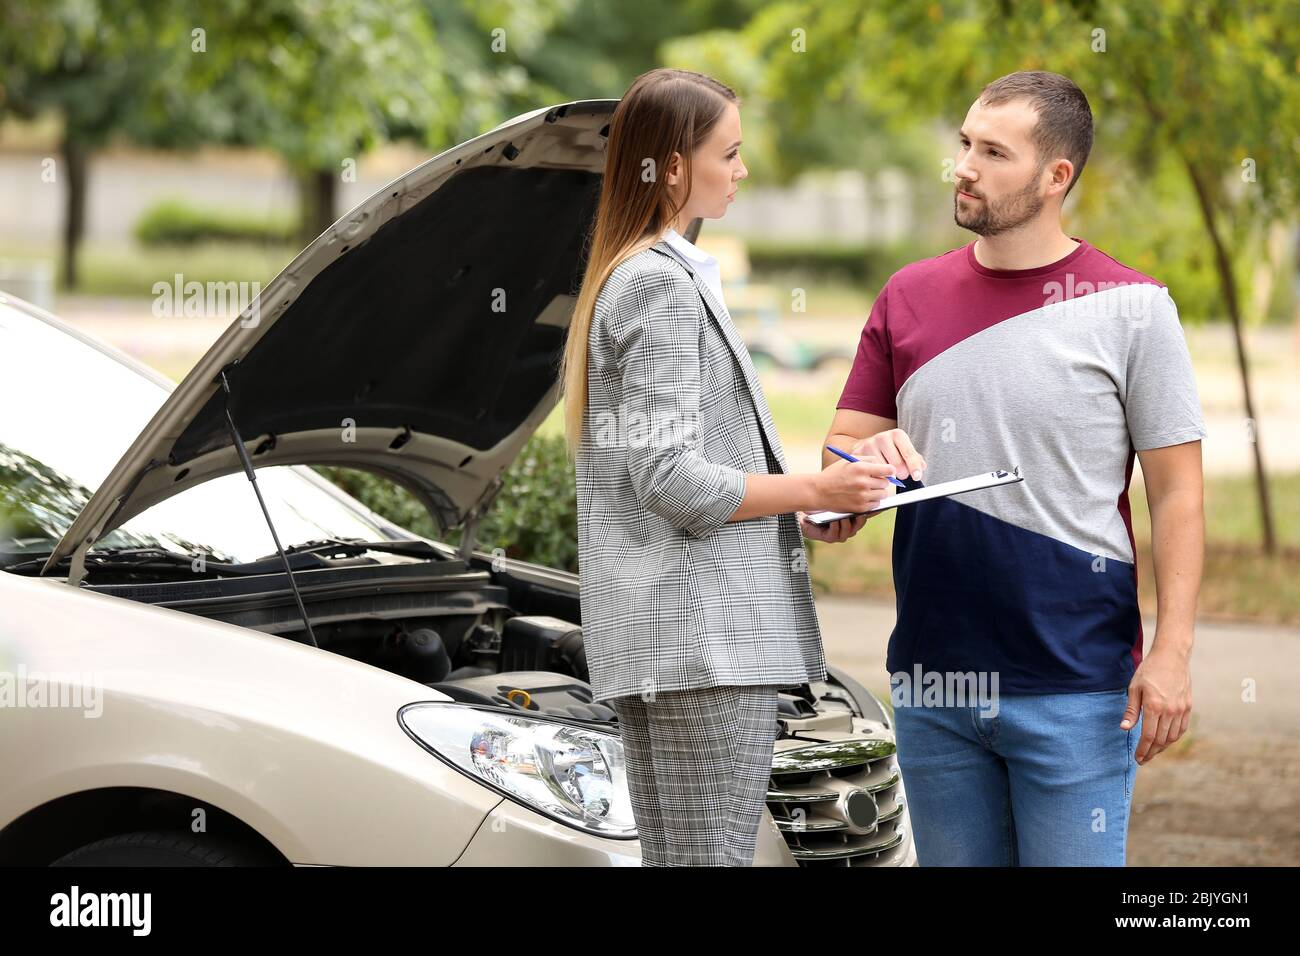 Young Man And Insurance Agent Near Damaged Car Outdoors Stock Photo Alamy